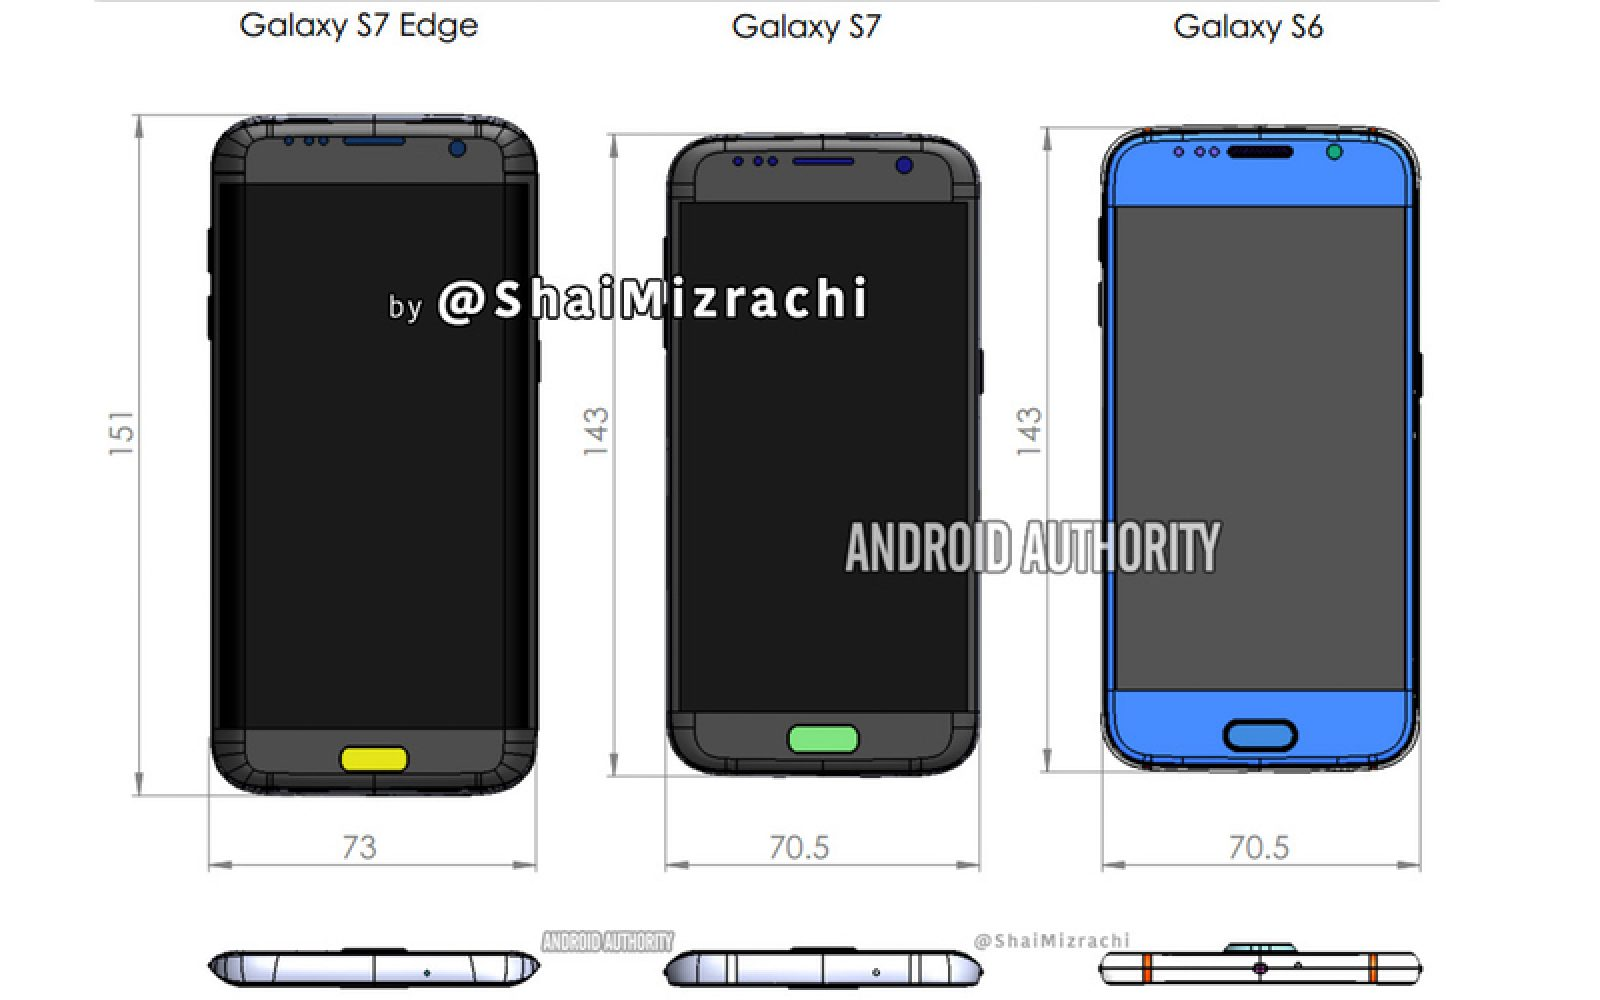 Samsung Galaxy S7 dimensions seemingly revealed in new schematics leak